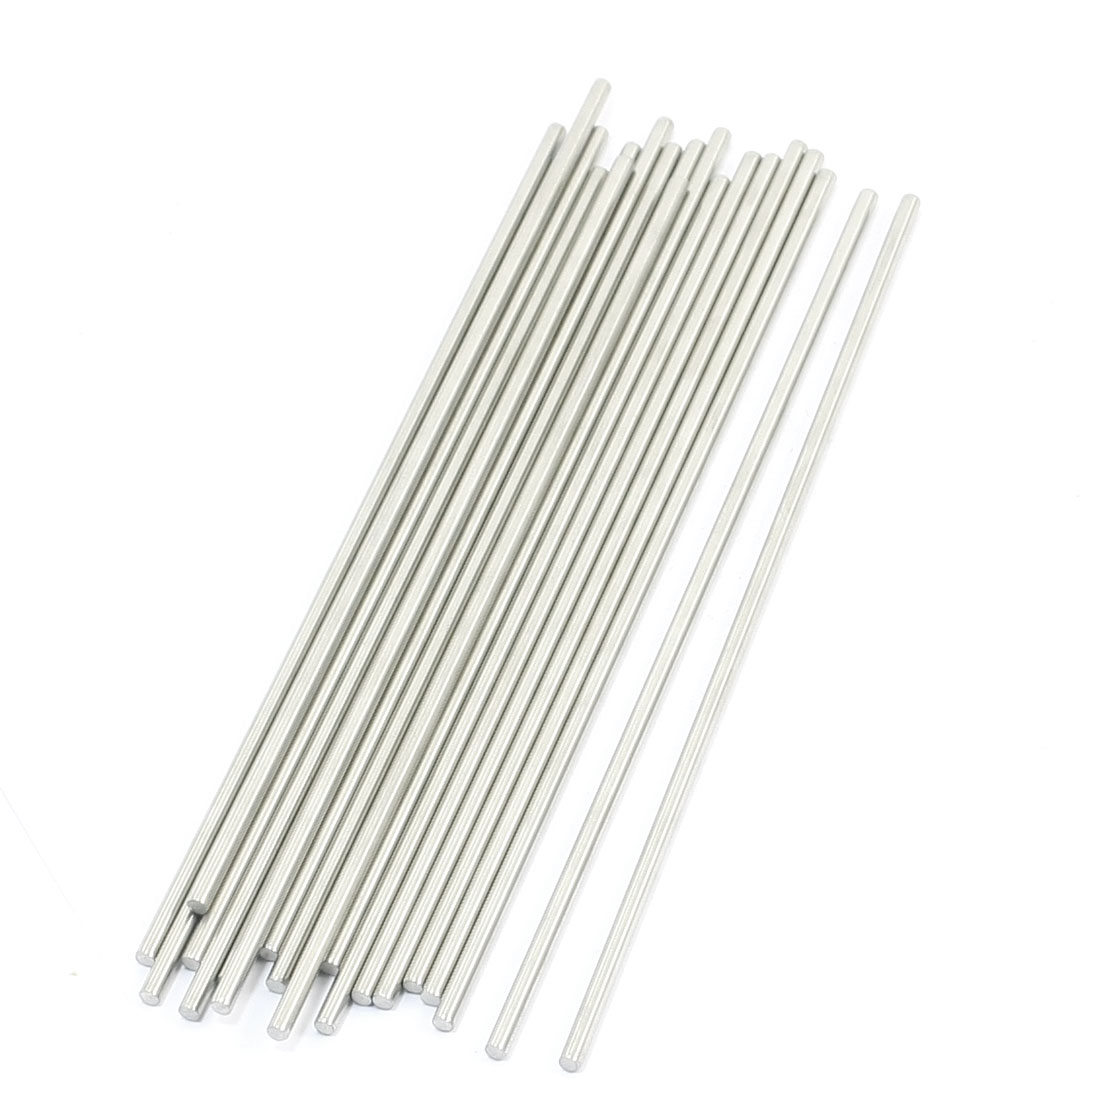 20 Pcs RC Toy Car Model Part Stainless Steel Round Rods Axles 3mm x 160mm